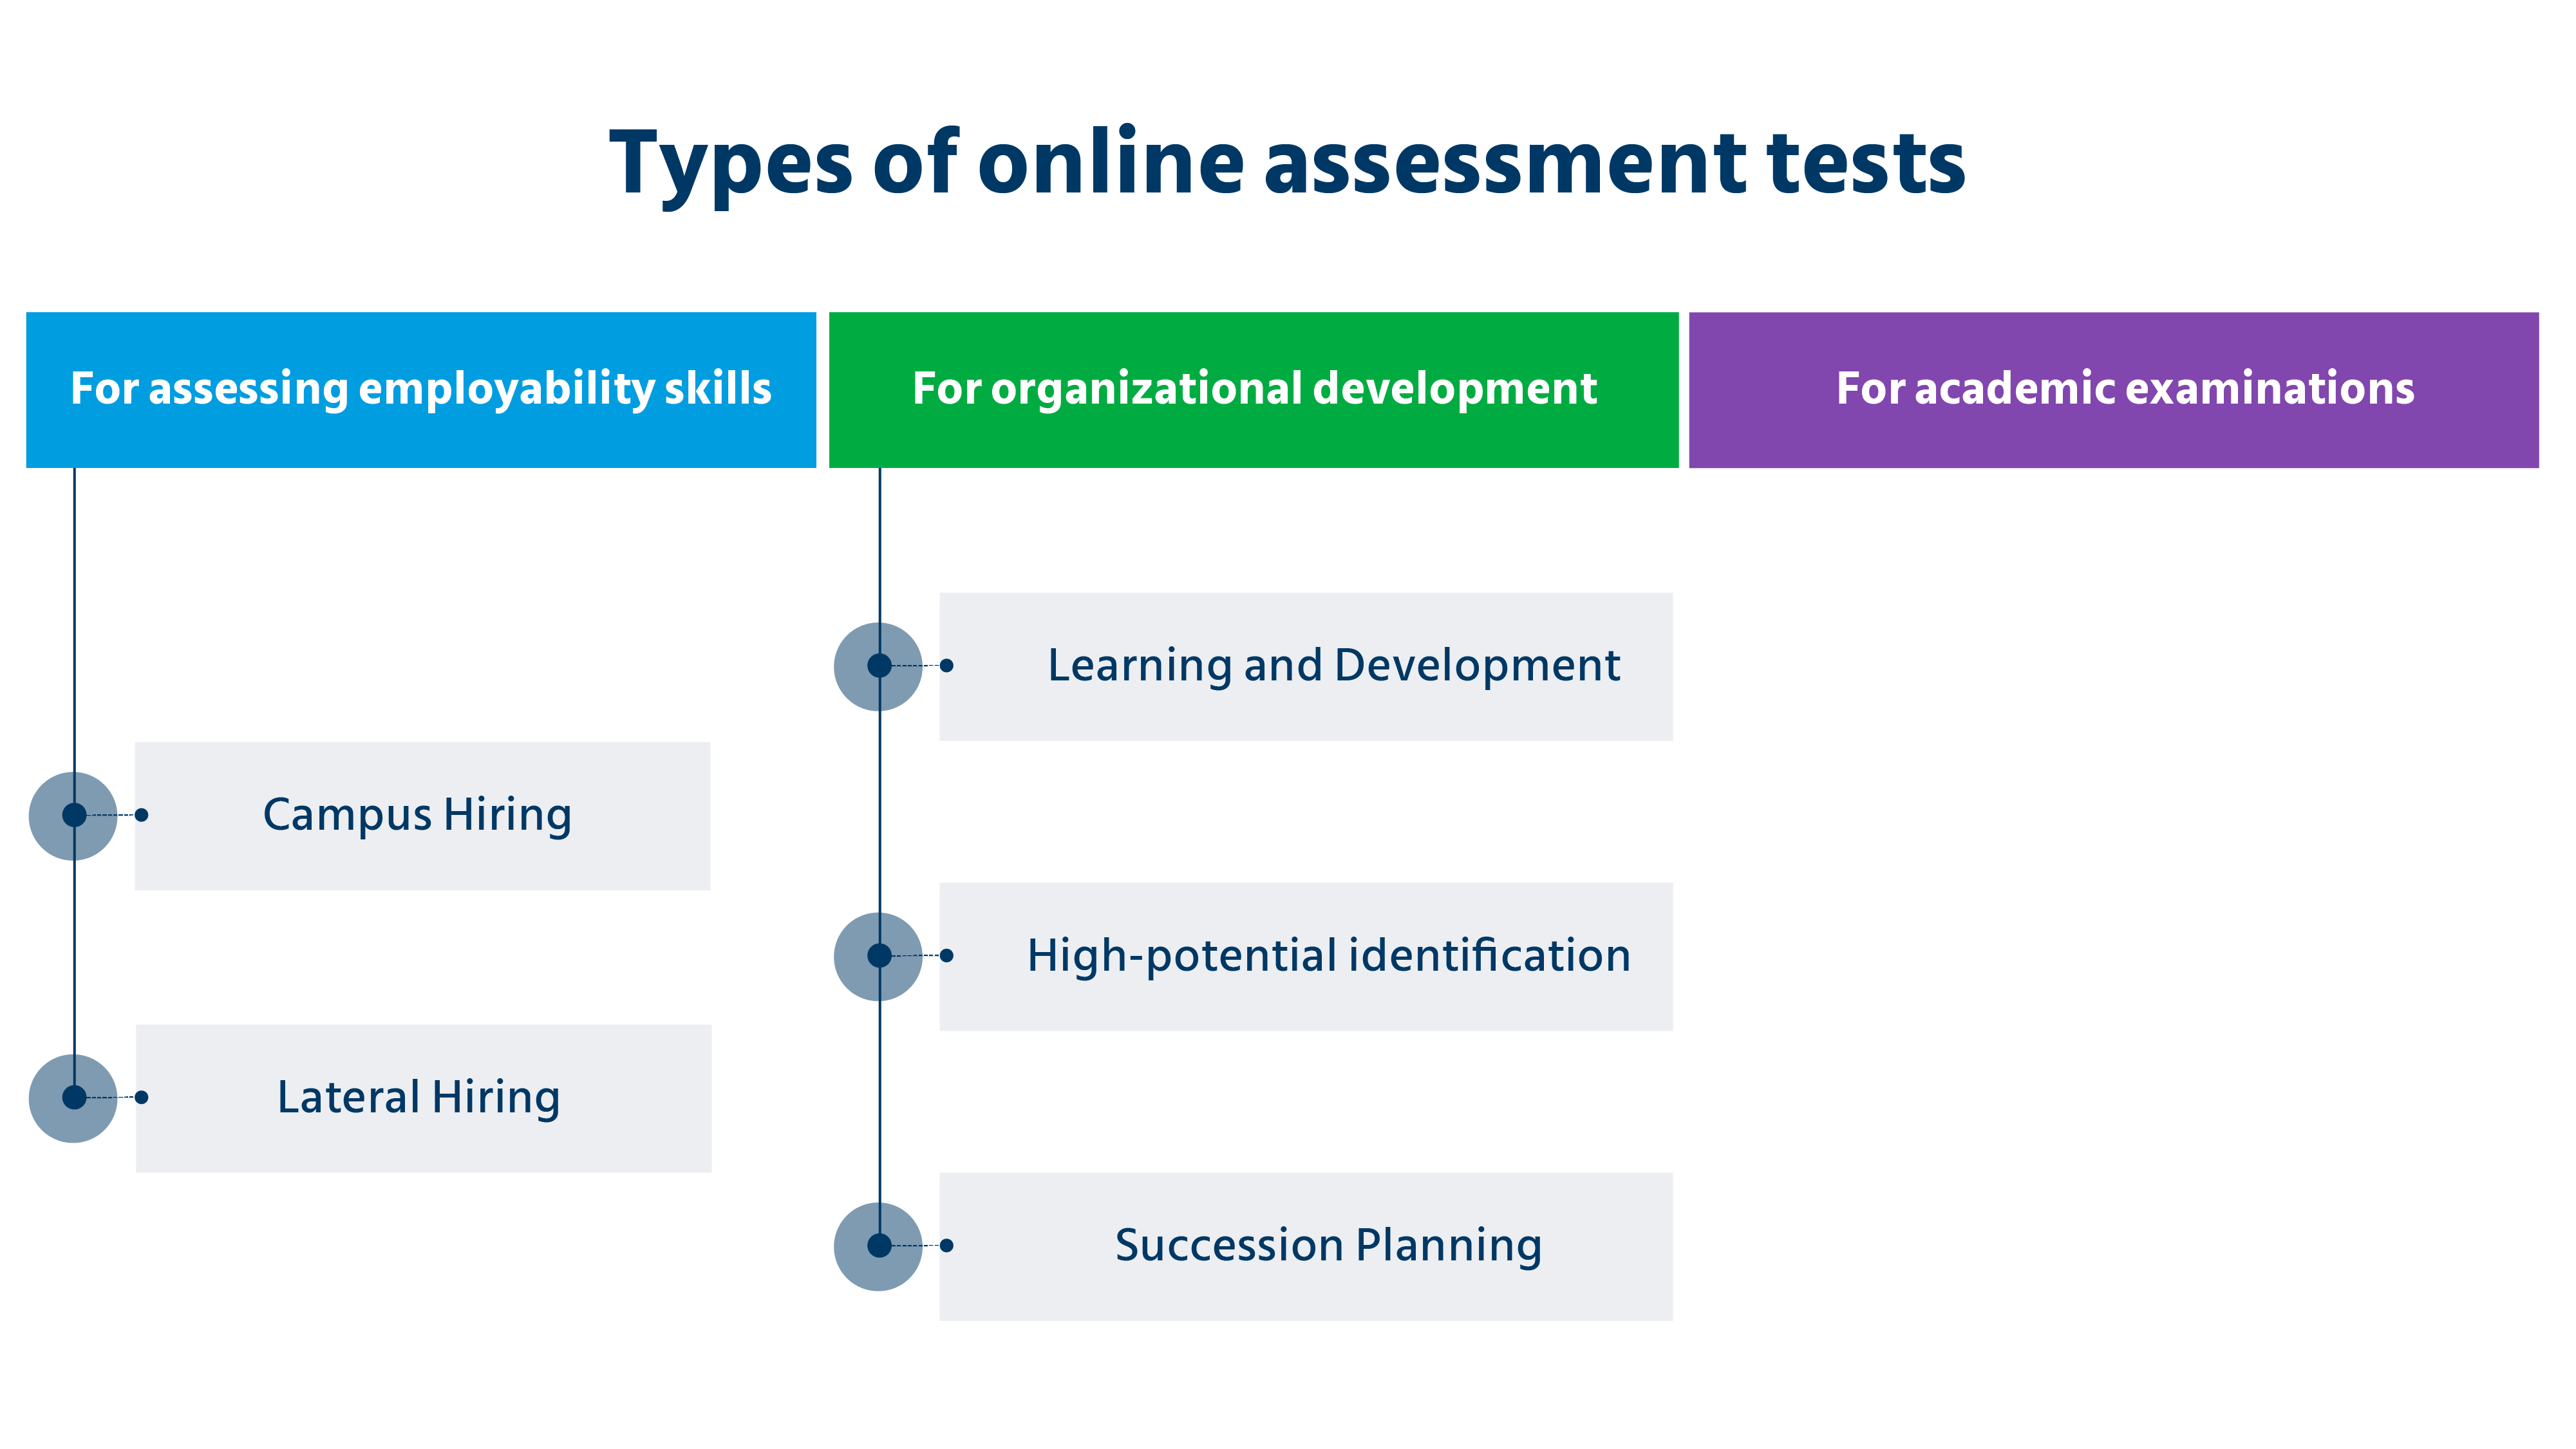 Types of online assessment tests